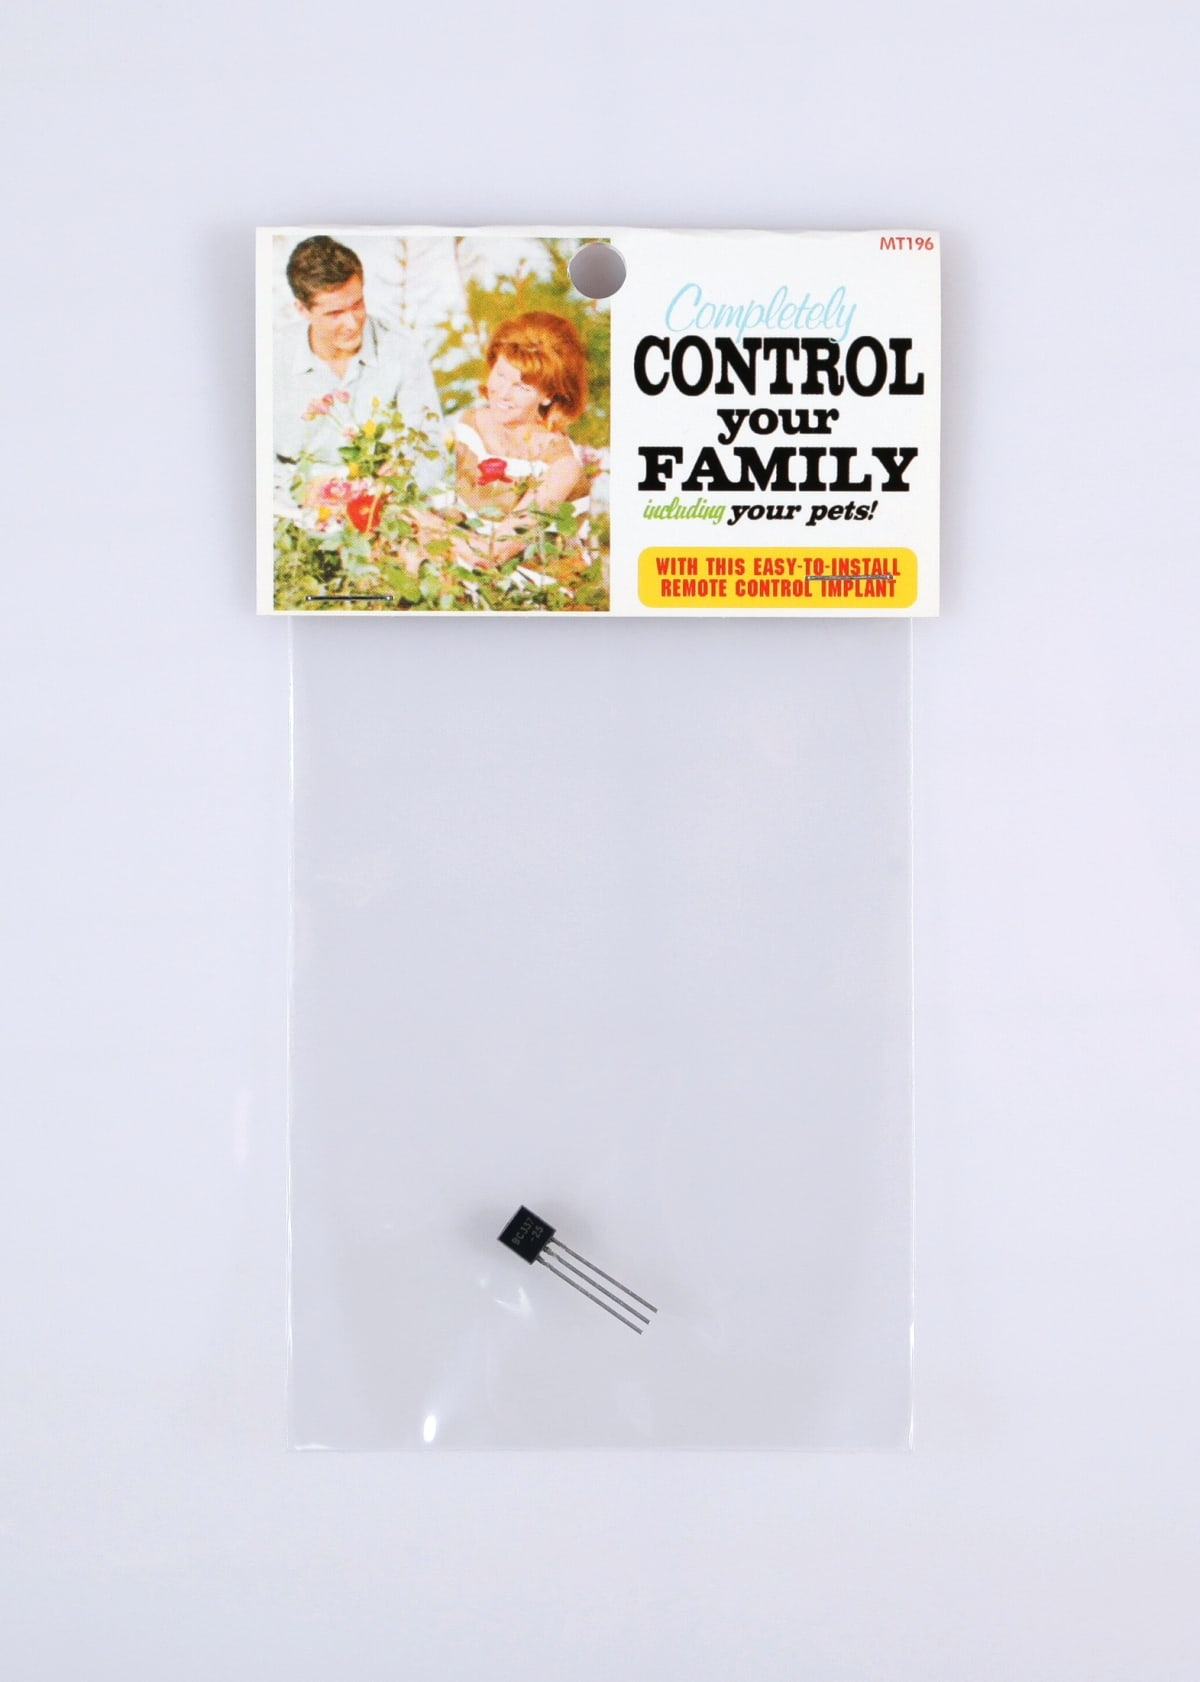 Control your family